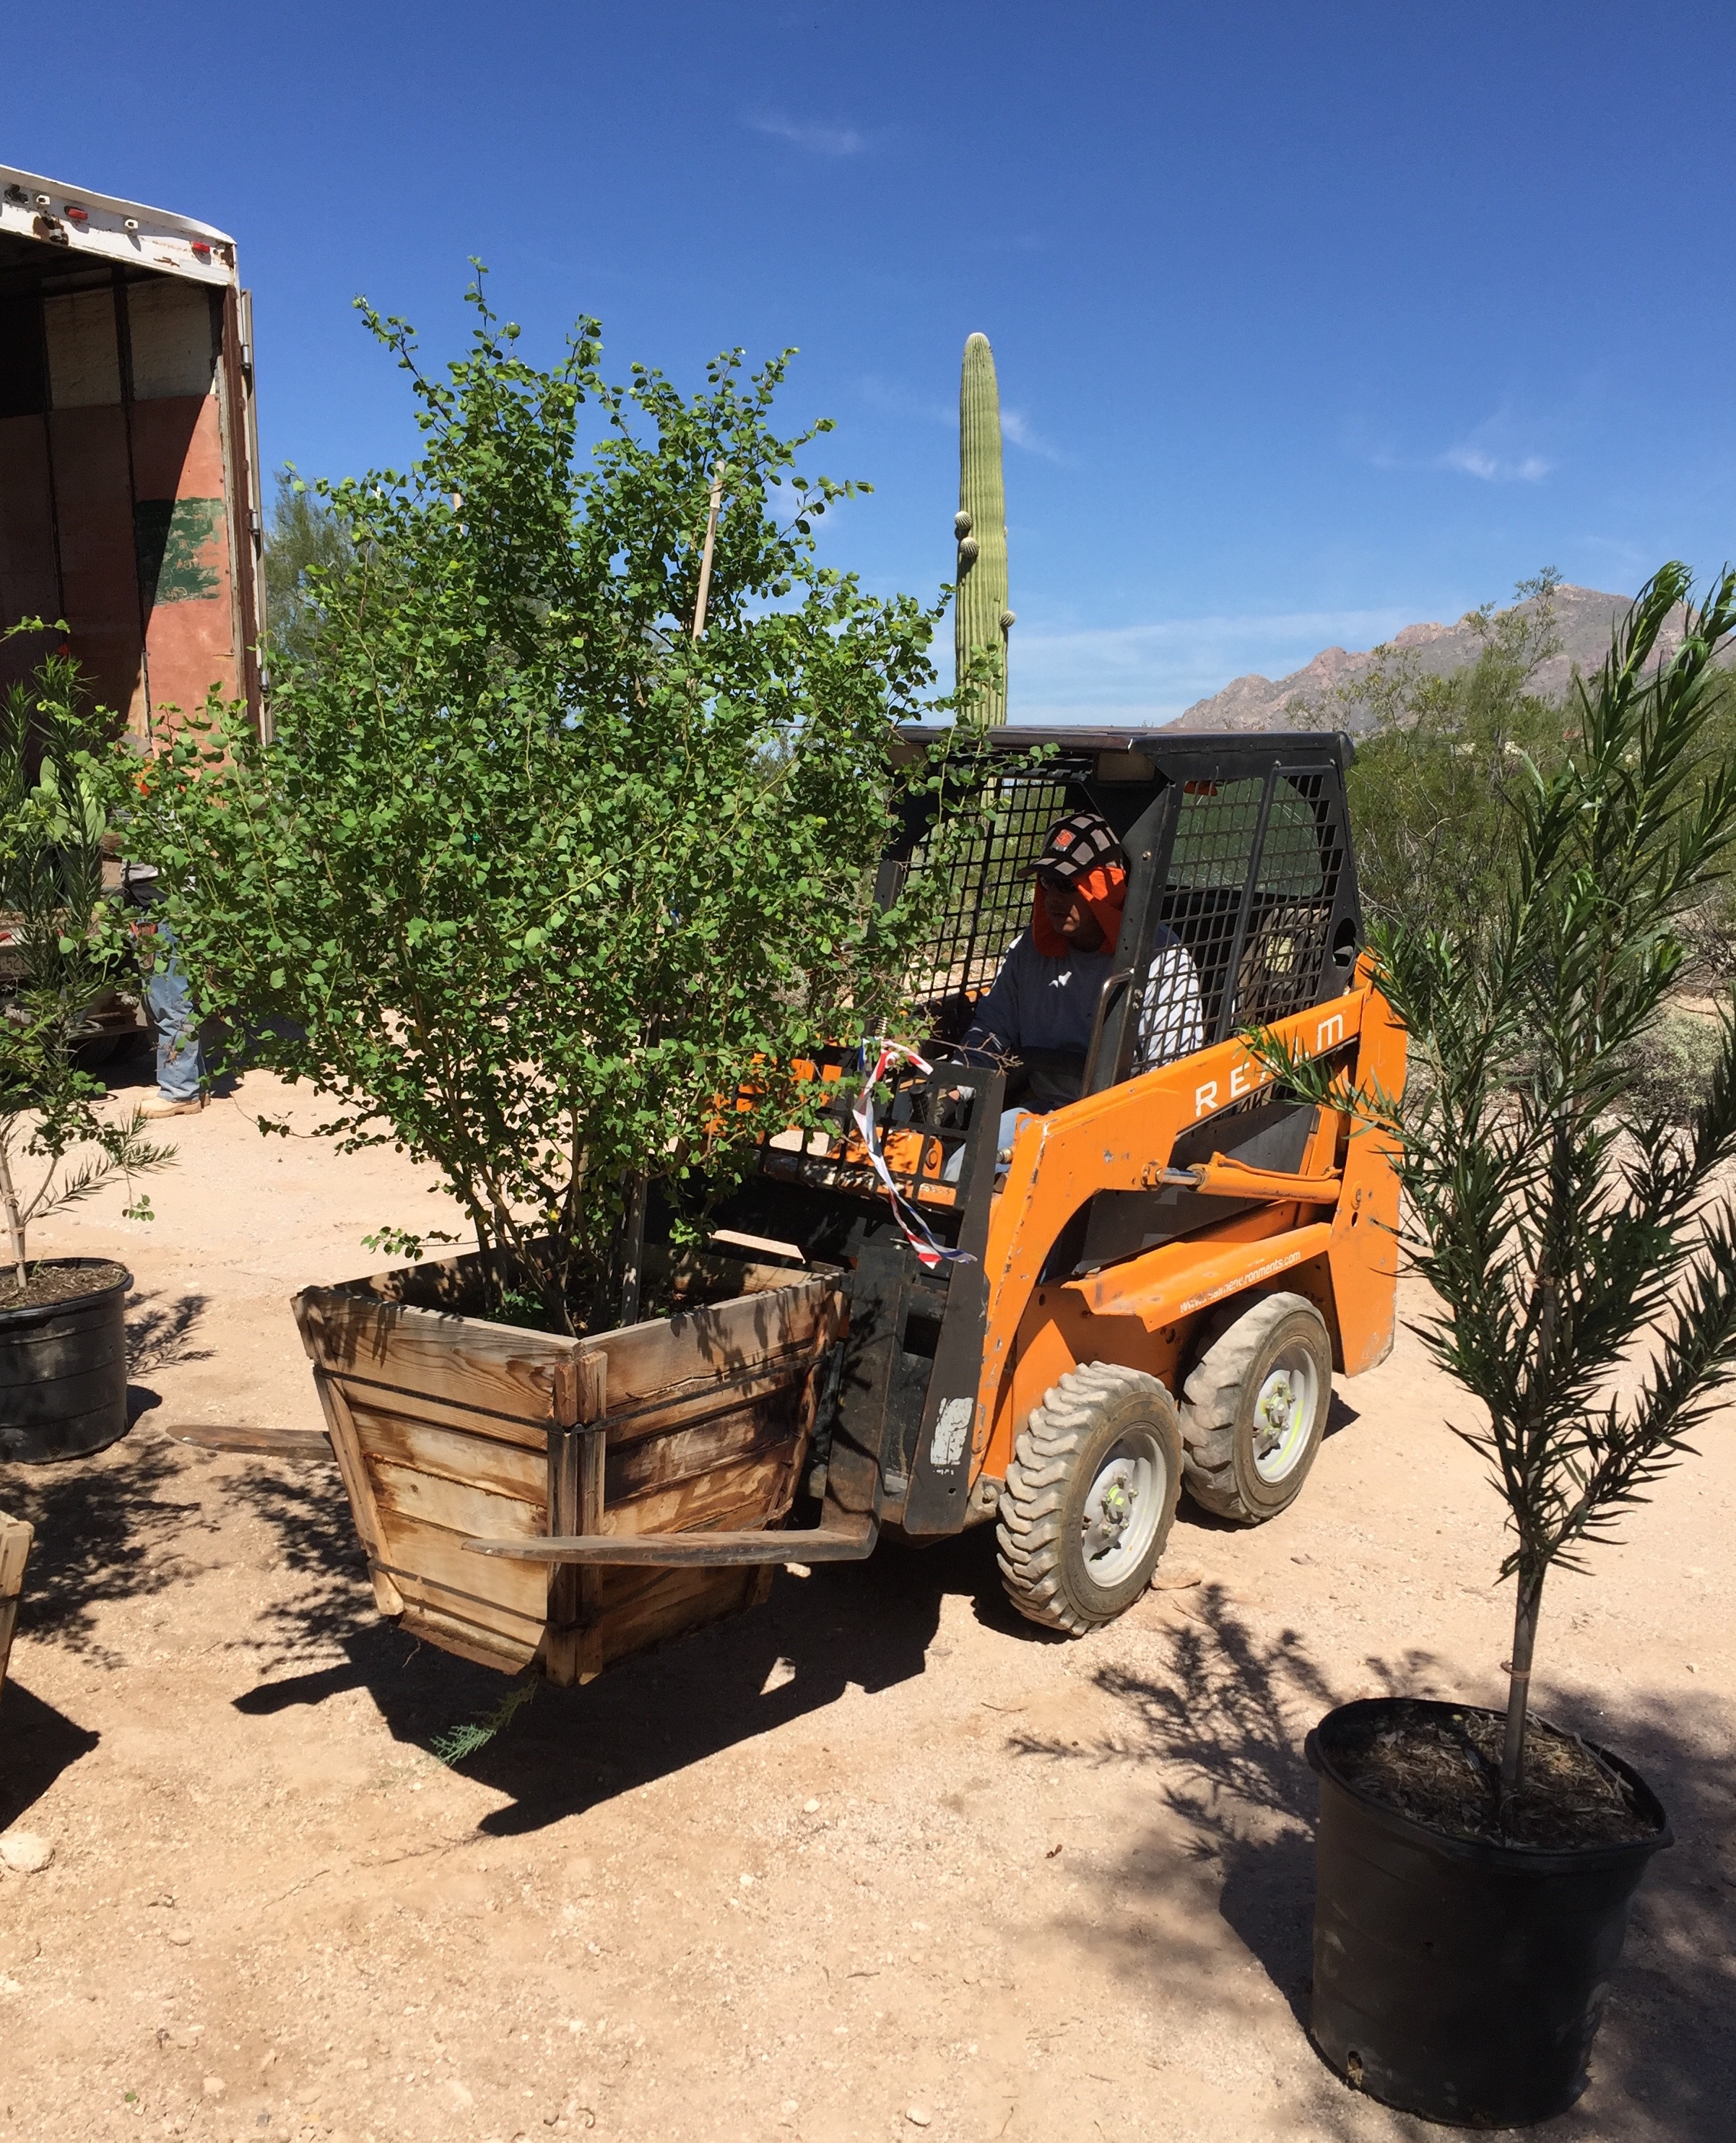 Carefully placing plants that just arrived on site